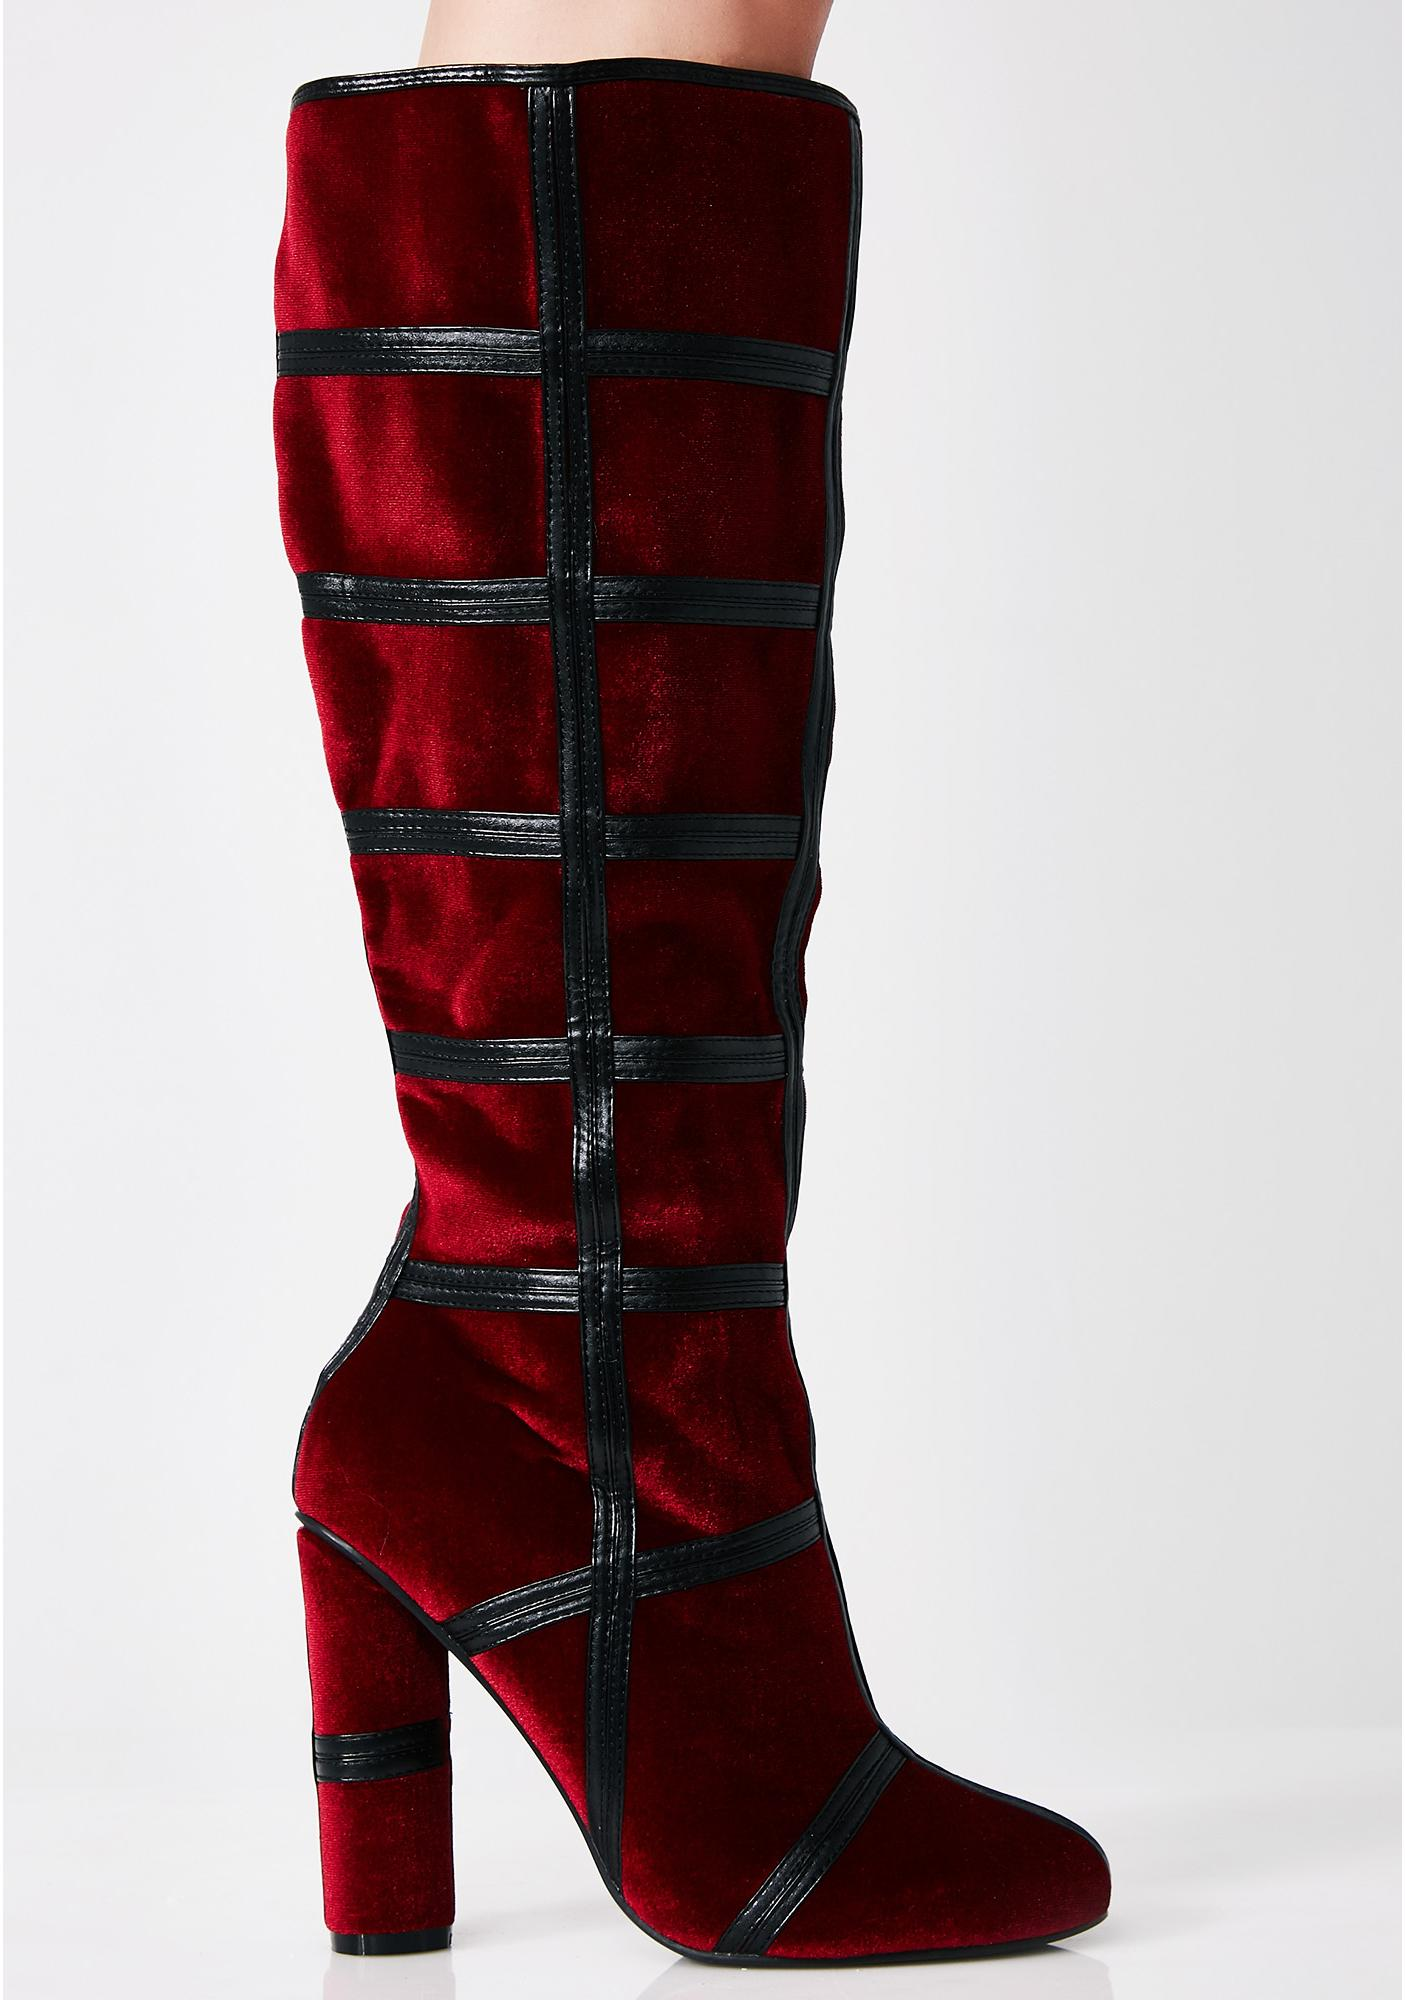 Venom Potion Knee High Boots